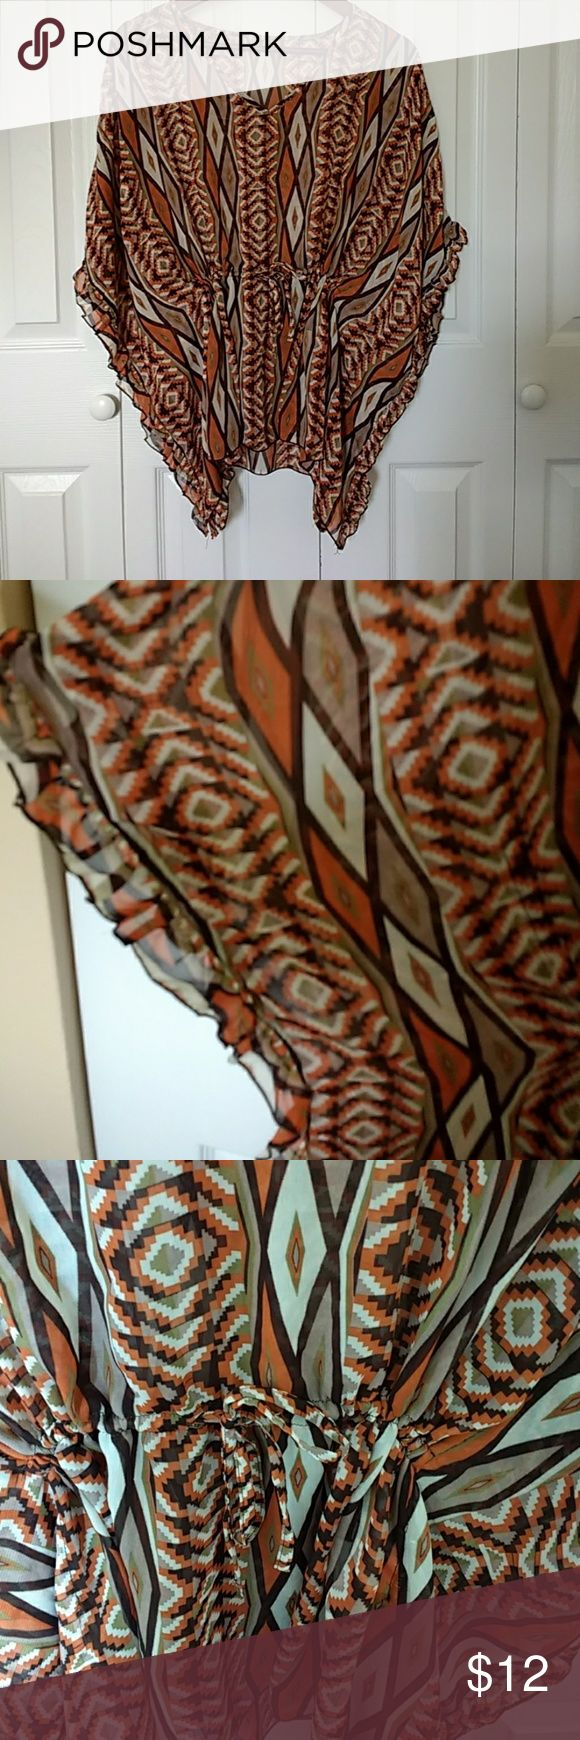 Antraci aztec printed batwing sheer shirt sz large Adorable fall colored aztec print Antraci sheer batwing shirt with drawstring waist detail  size large Antraci Tops Blouses